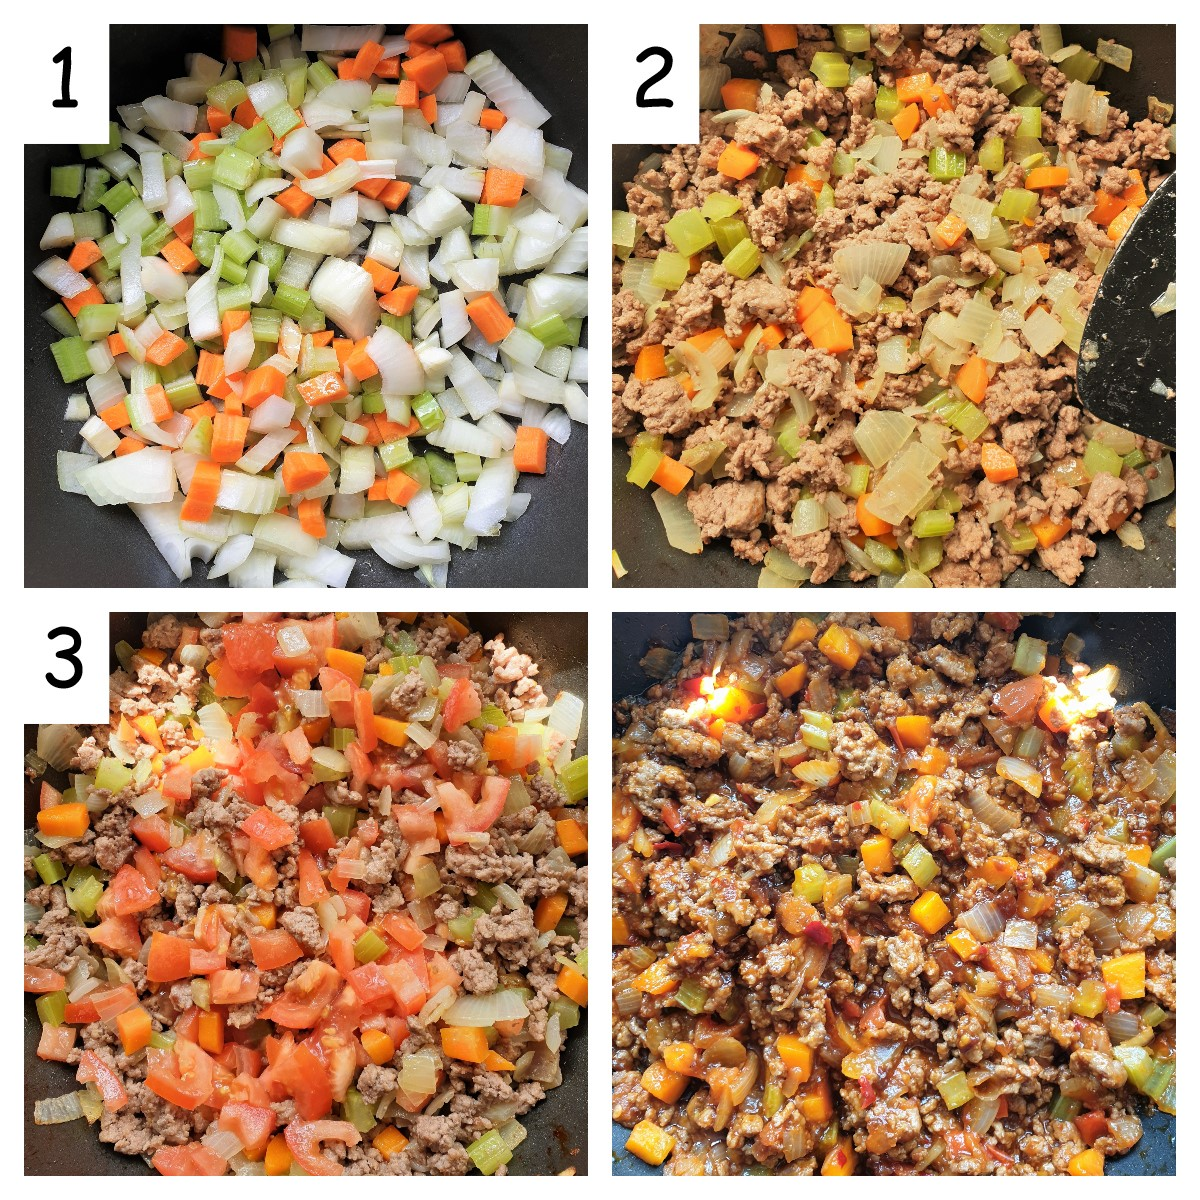 Collage showing the steps for making the meat sauce.